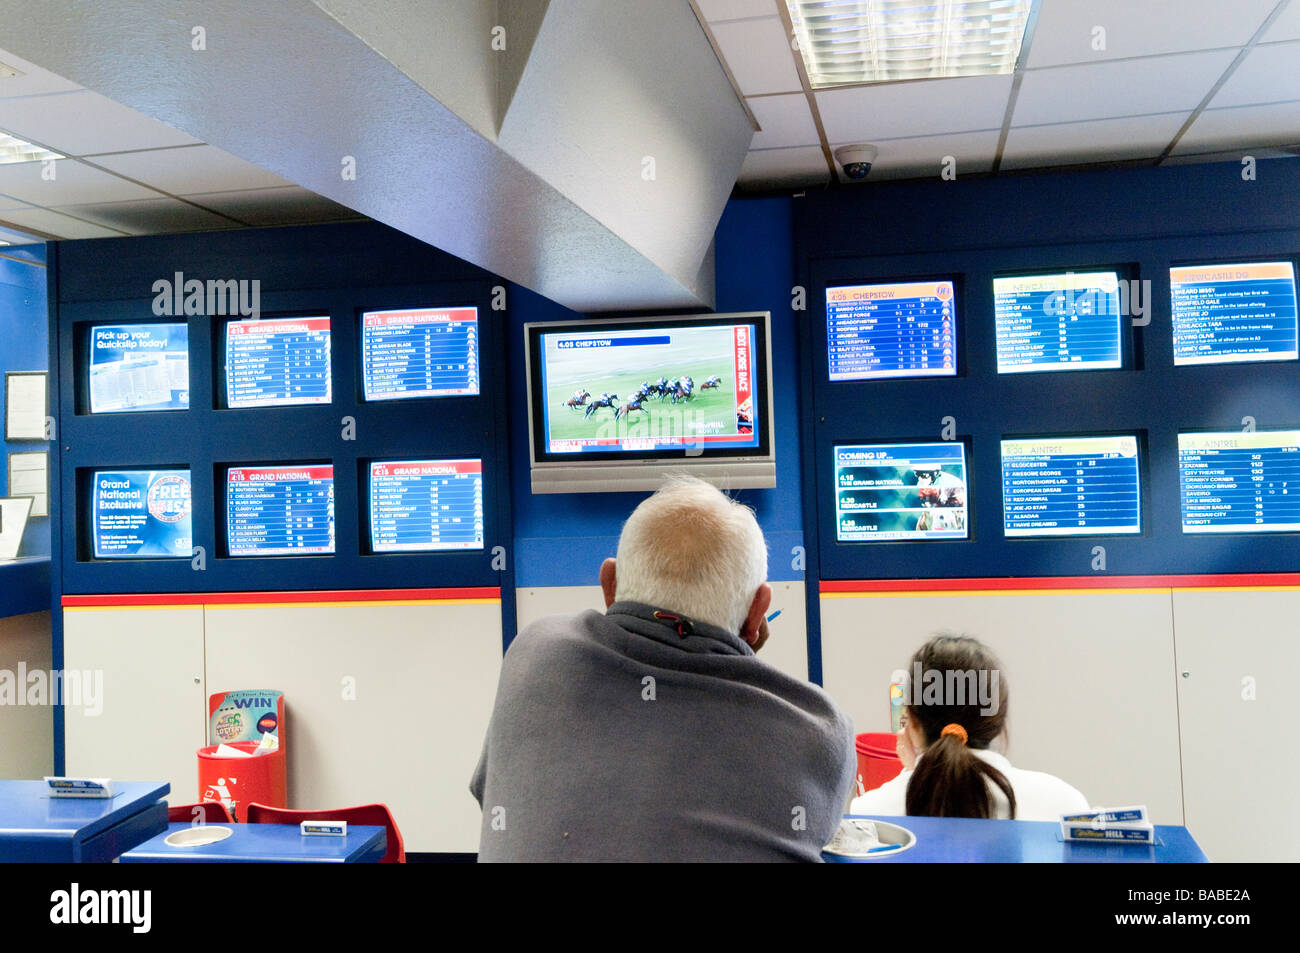 Screens in William Hill betting shop London England UK - Stock Image